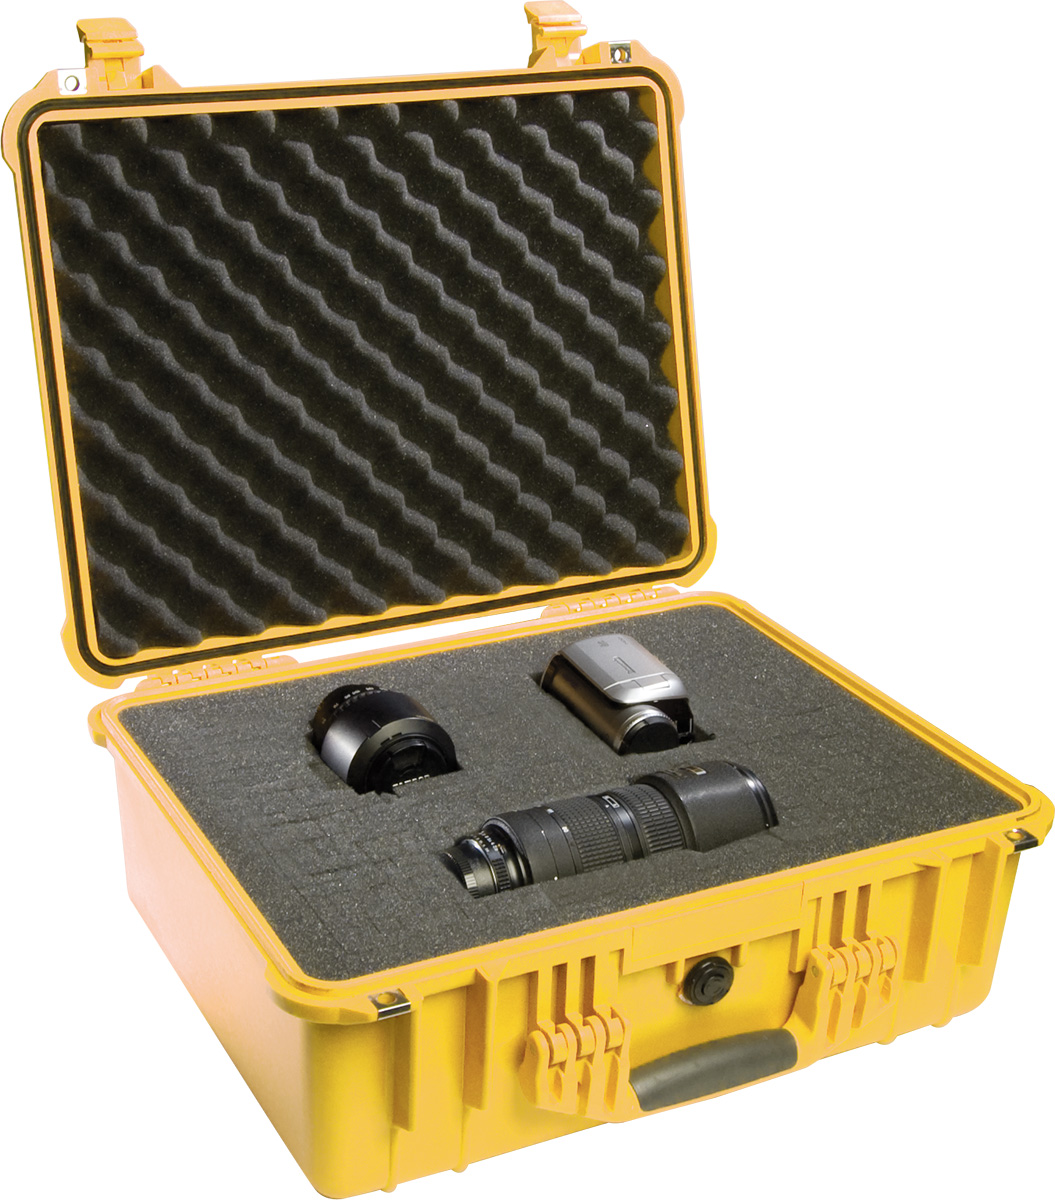 pelican 1550 yellow watertight foam case